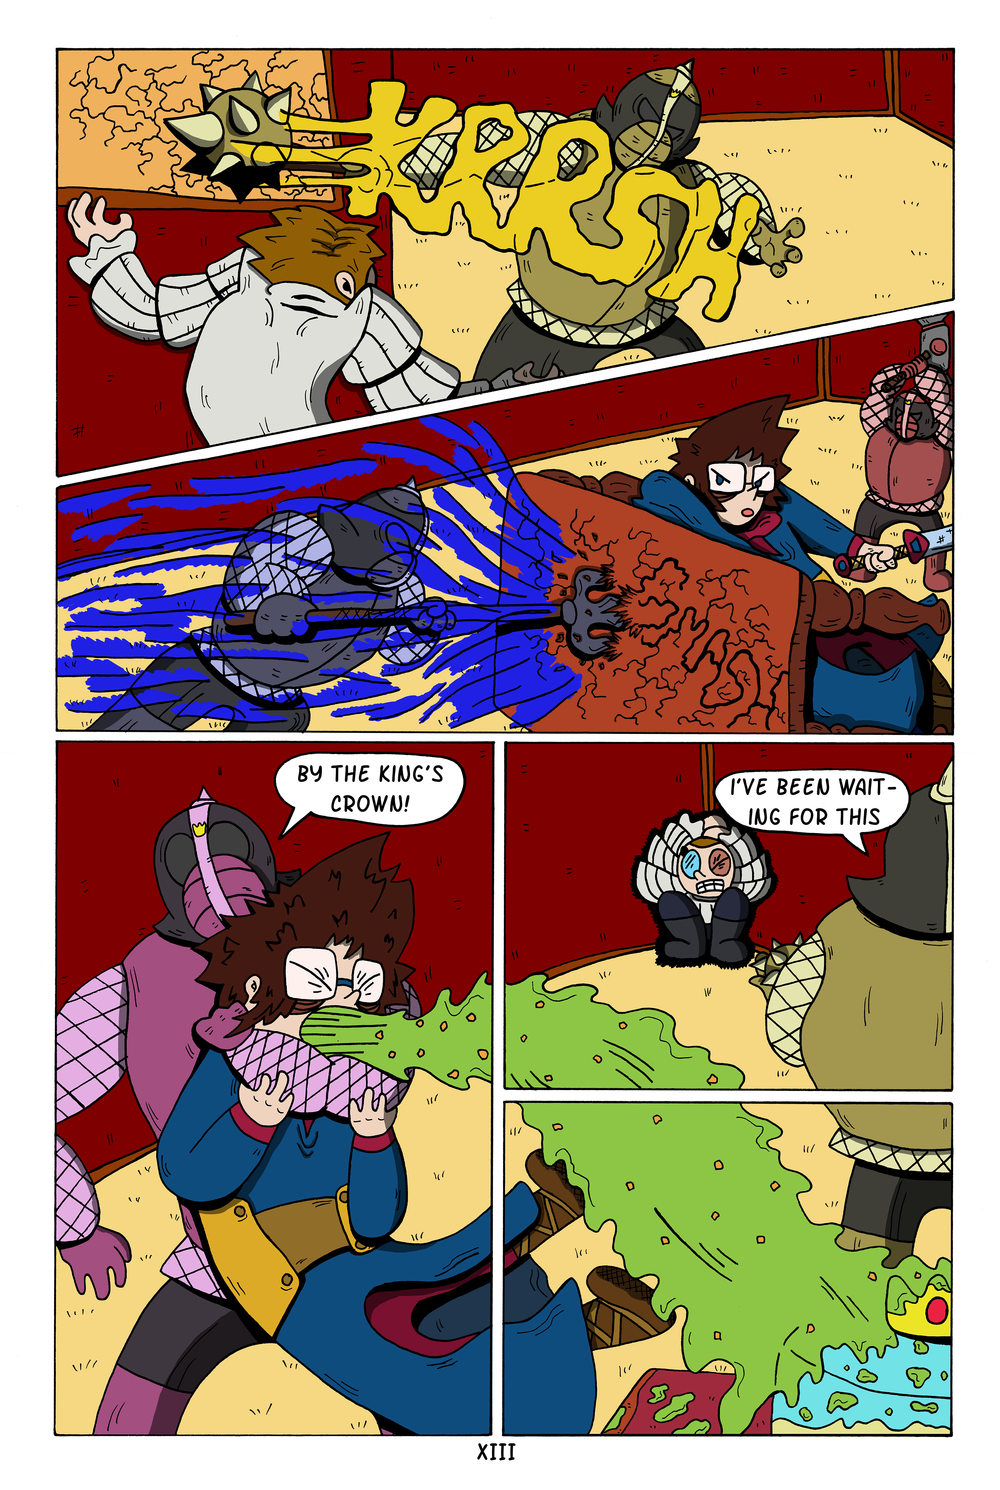 30. Dagorgrind_2_Page13_300.png